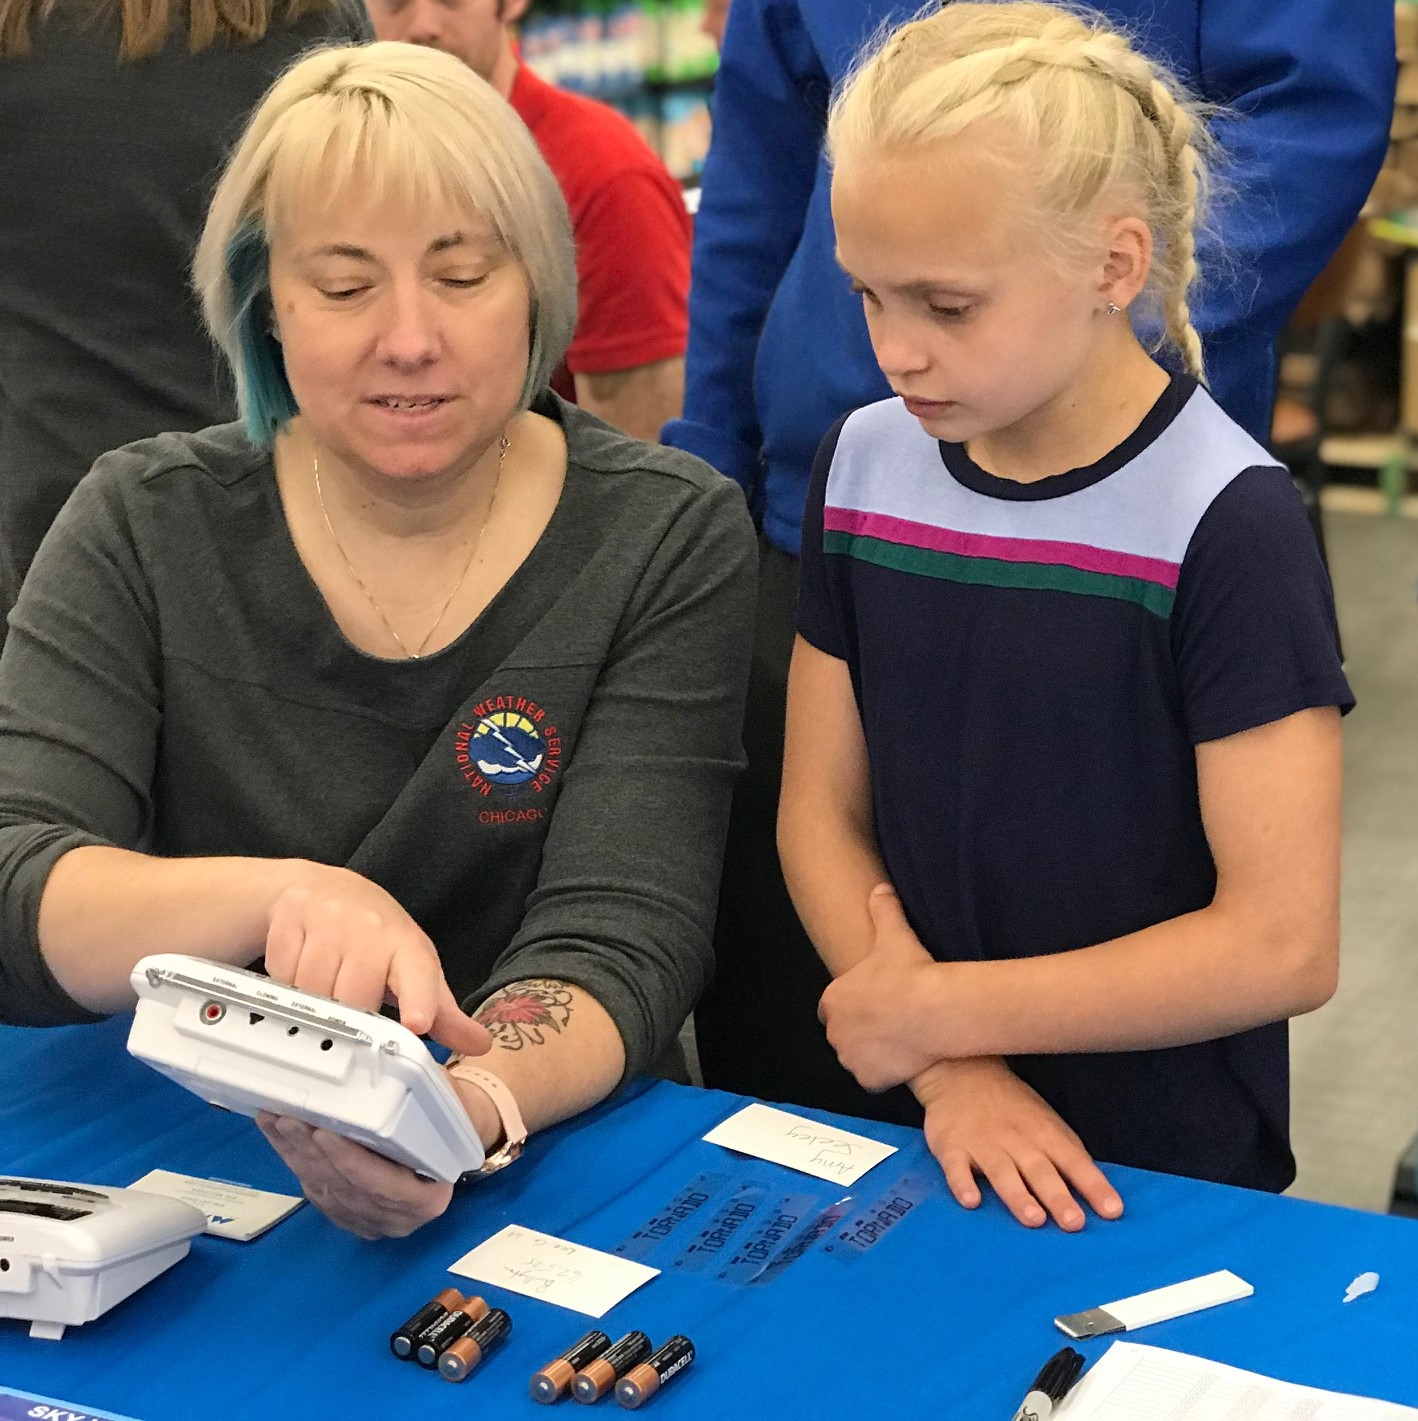 Amy teaching a child about a weather radio